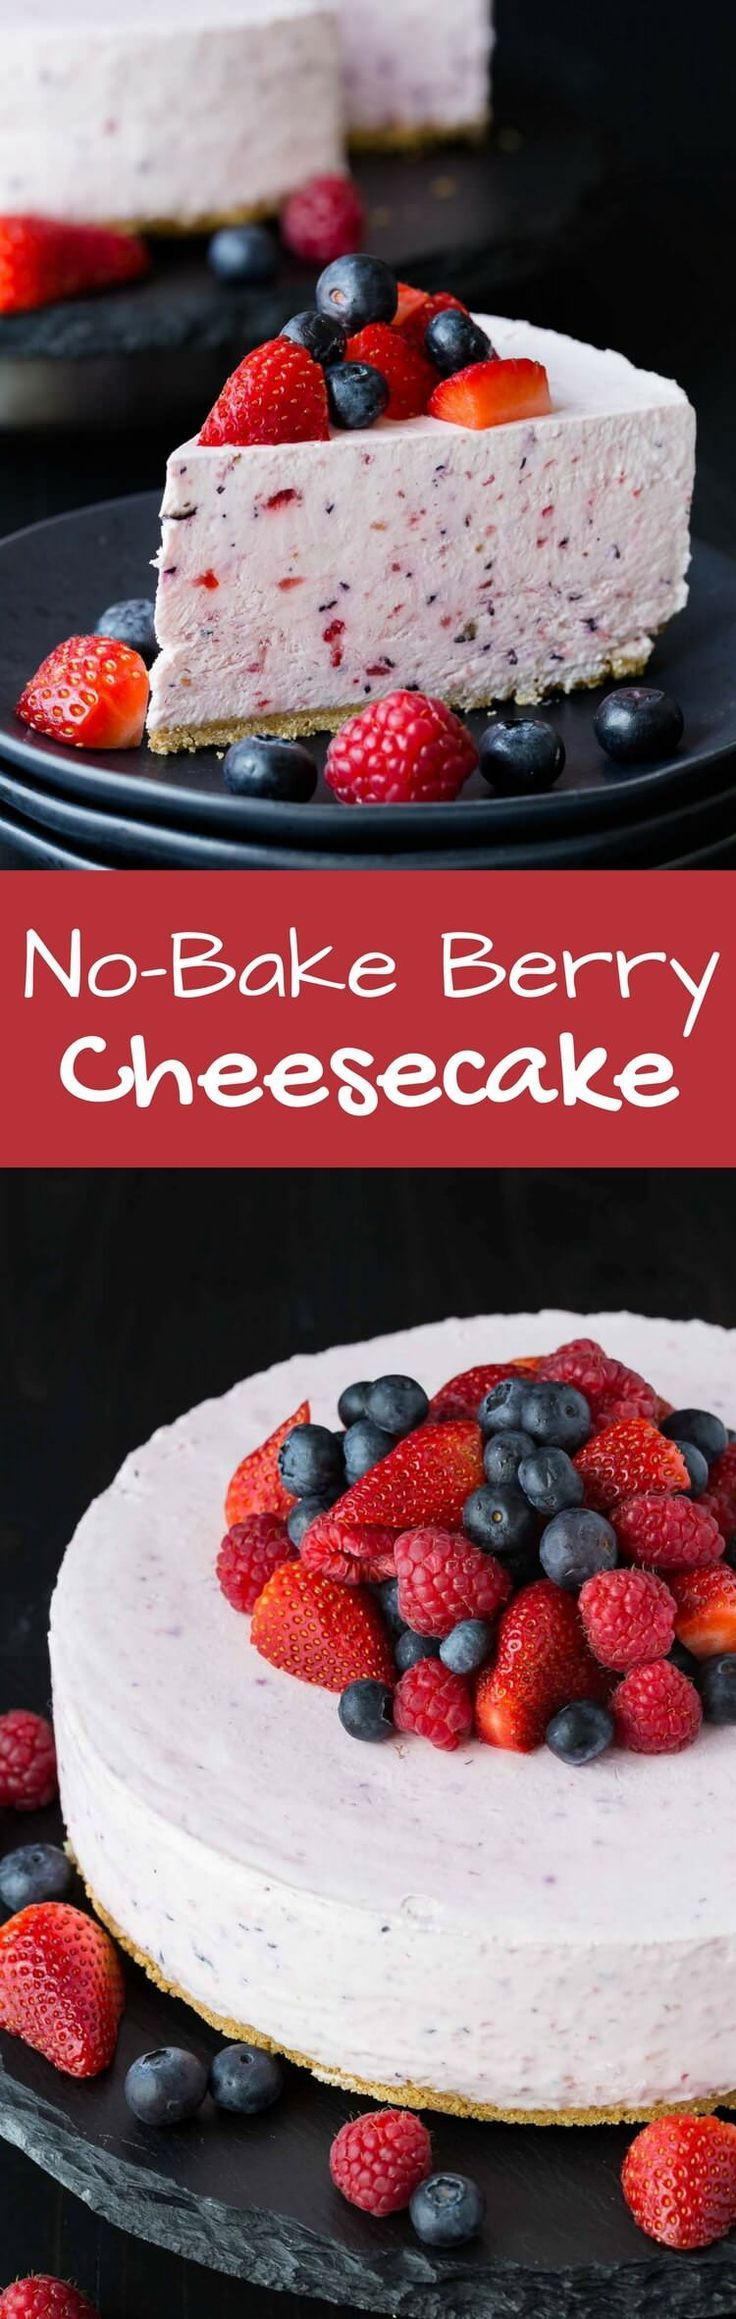 This no bake berry cheesecake is one of those that you will want to make for every summer party. It's full of strawberries and blueberries.